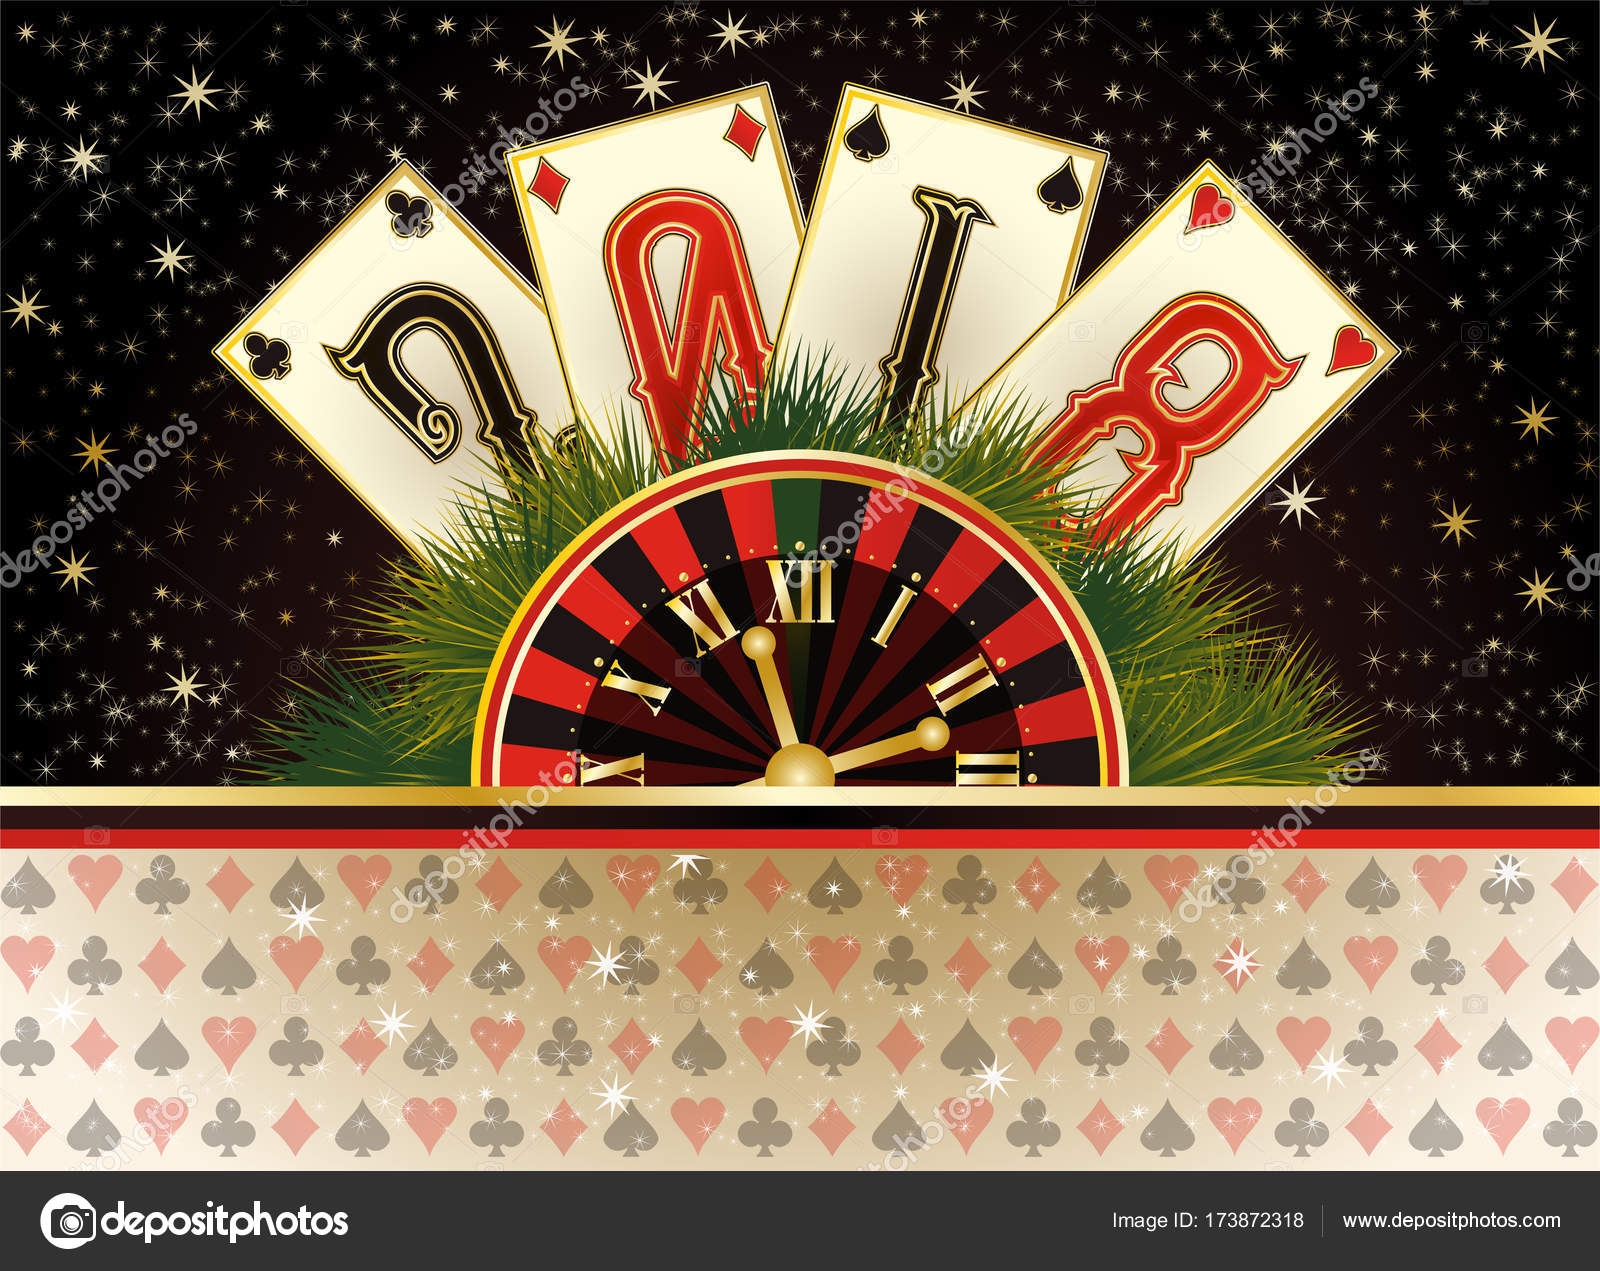 Get Higher Online Gambling Outcomes